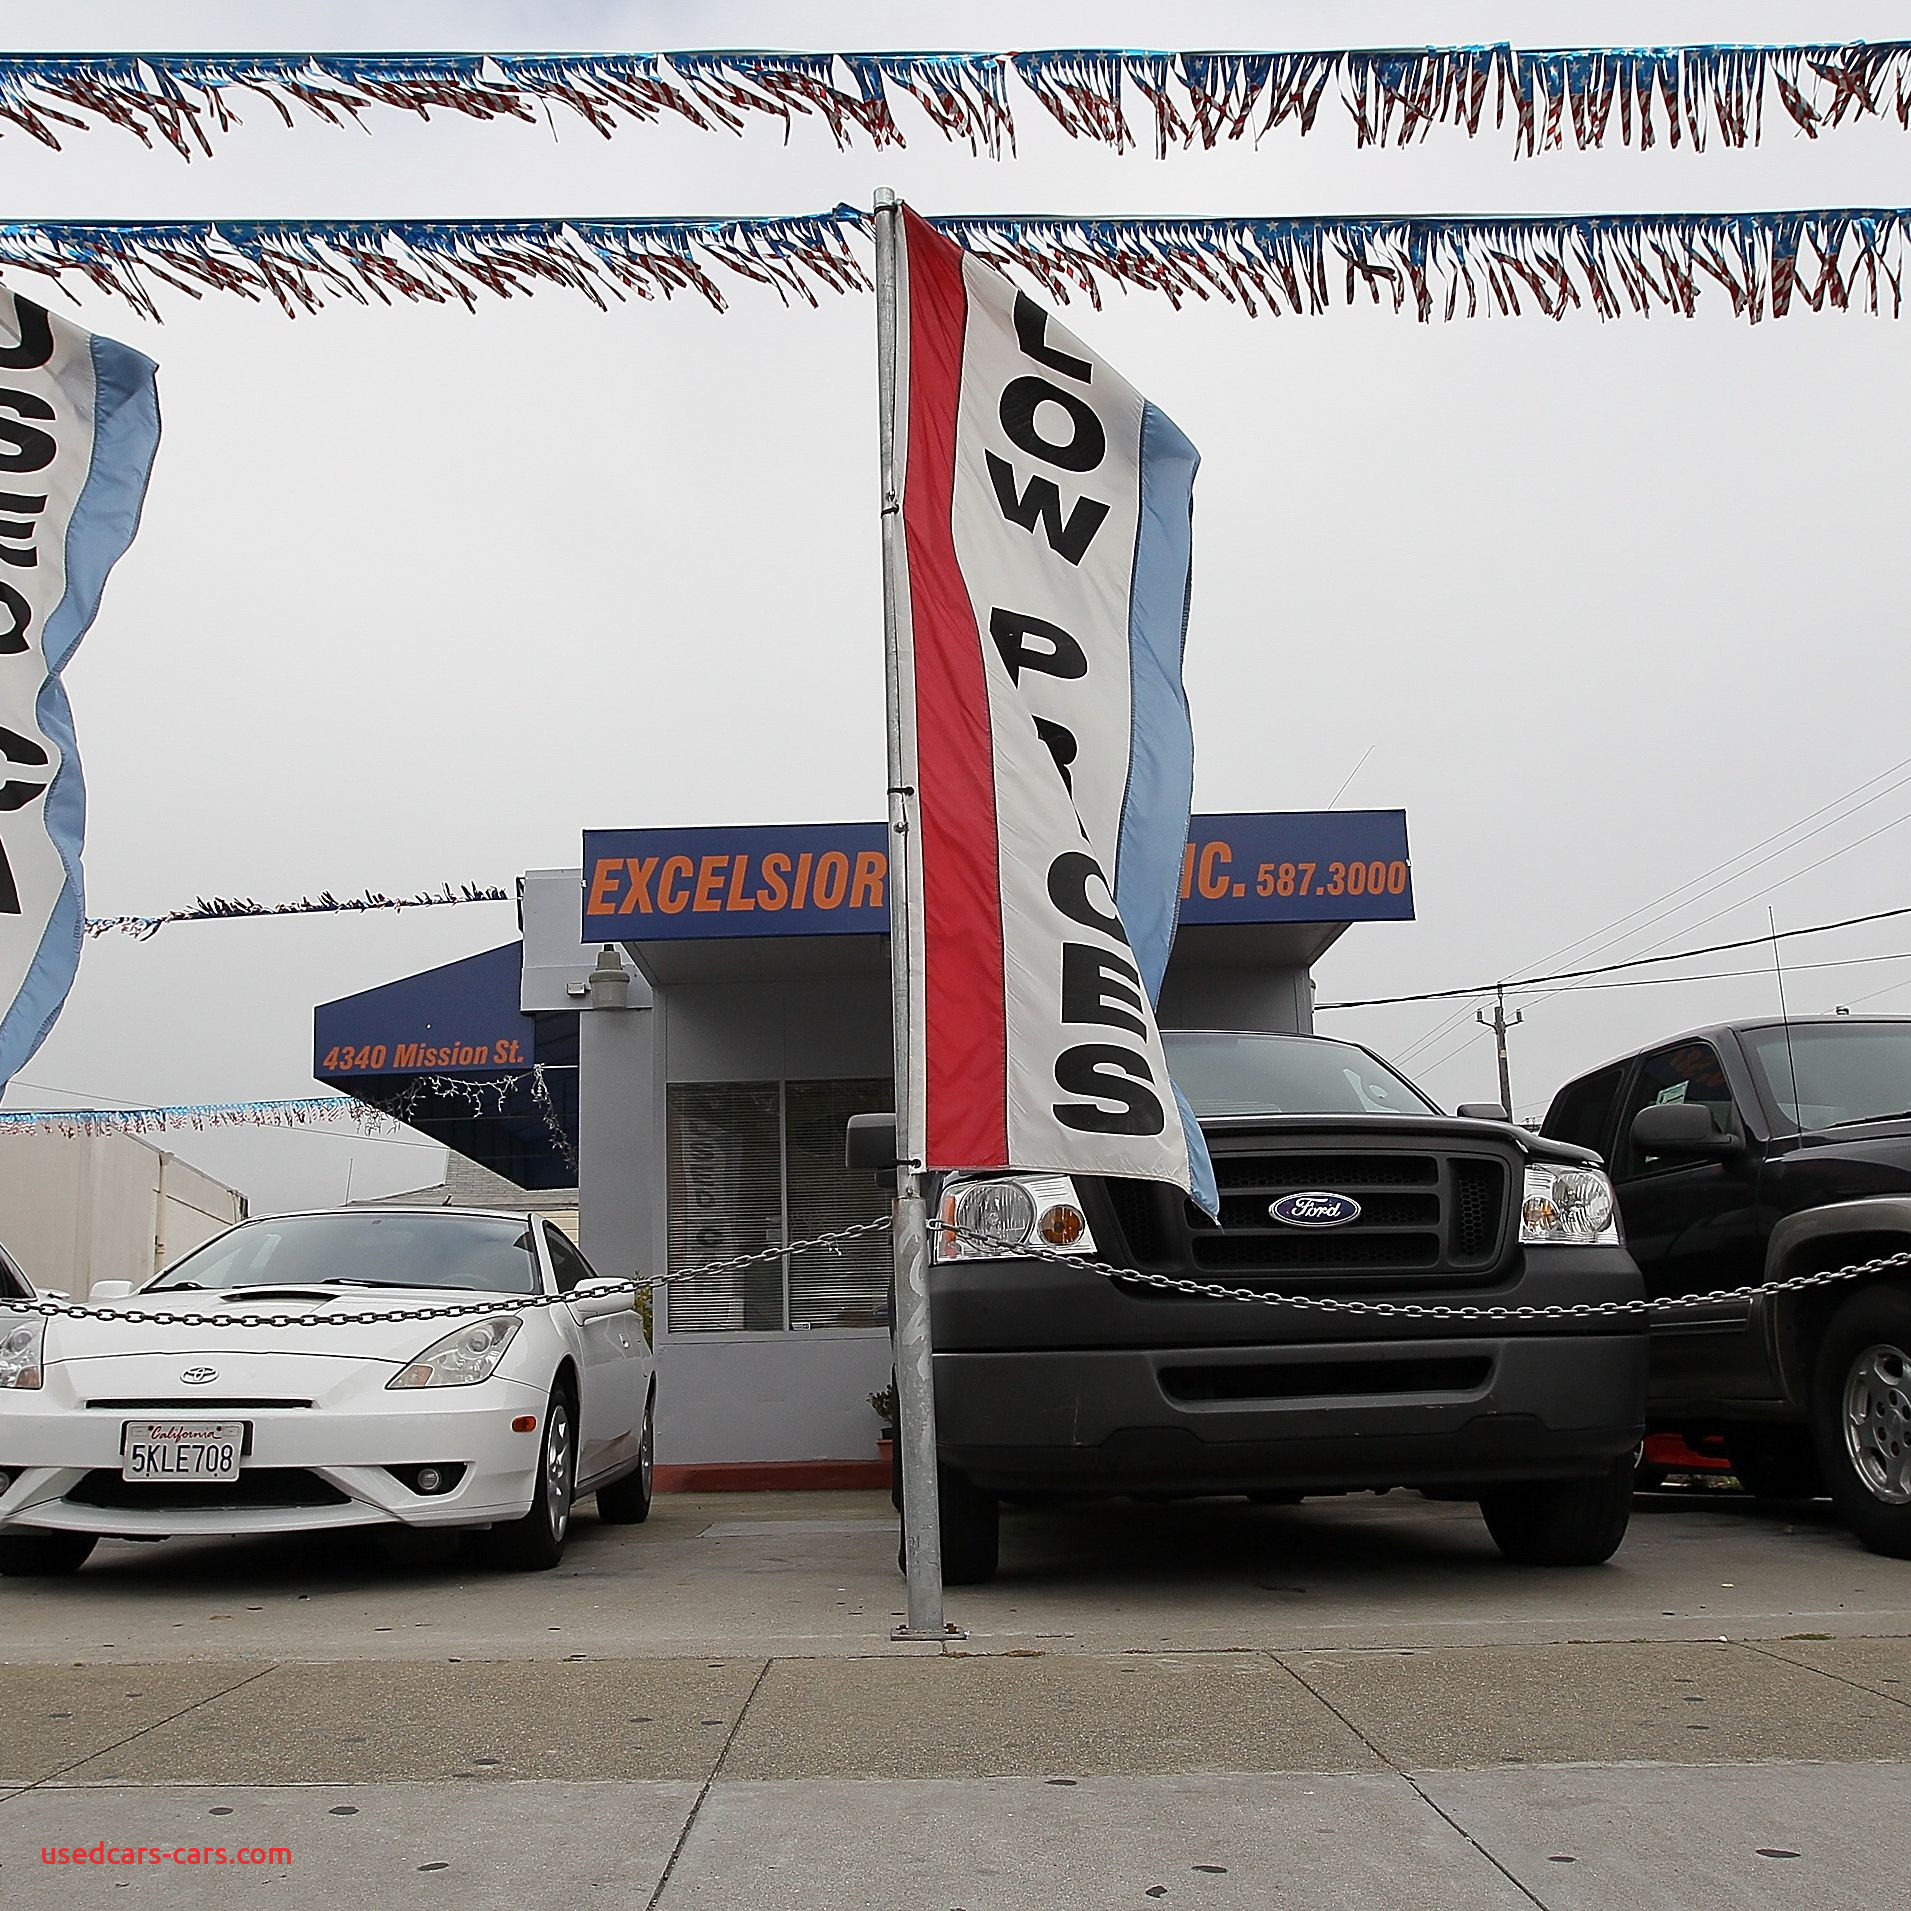 Buy Here Pay Here Used Cars Near Me Elegant Used Car Sales Figures From 2000 to 2015